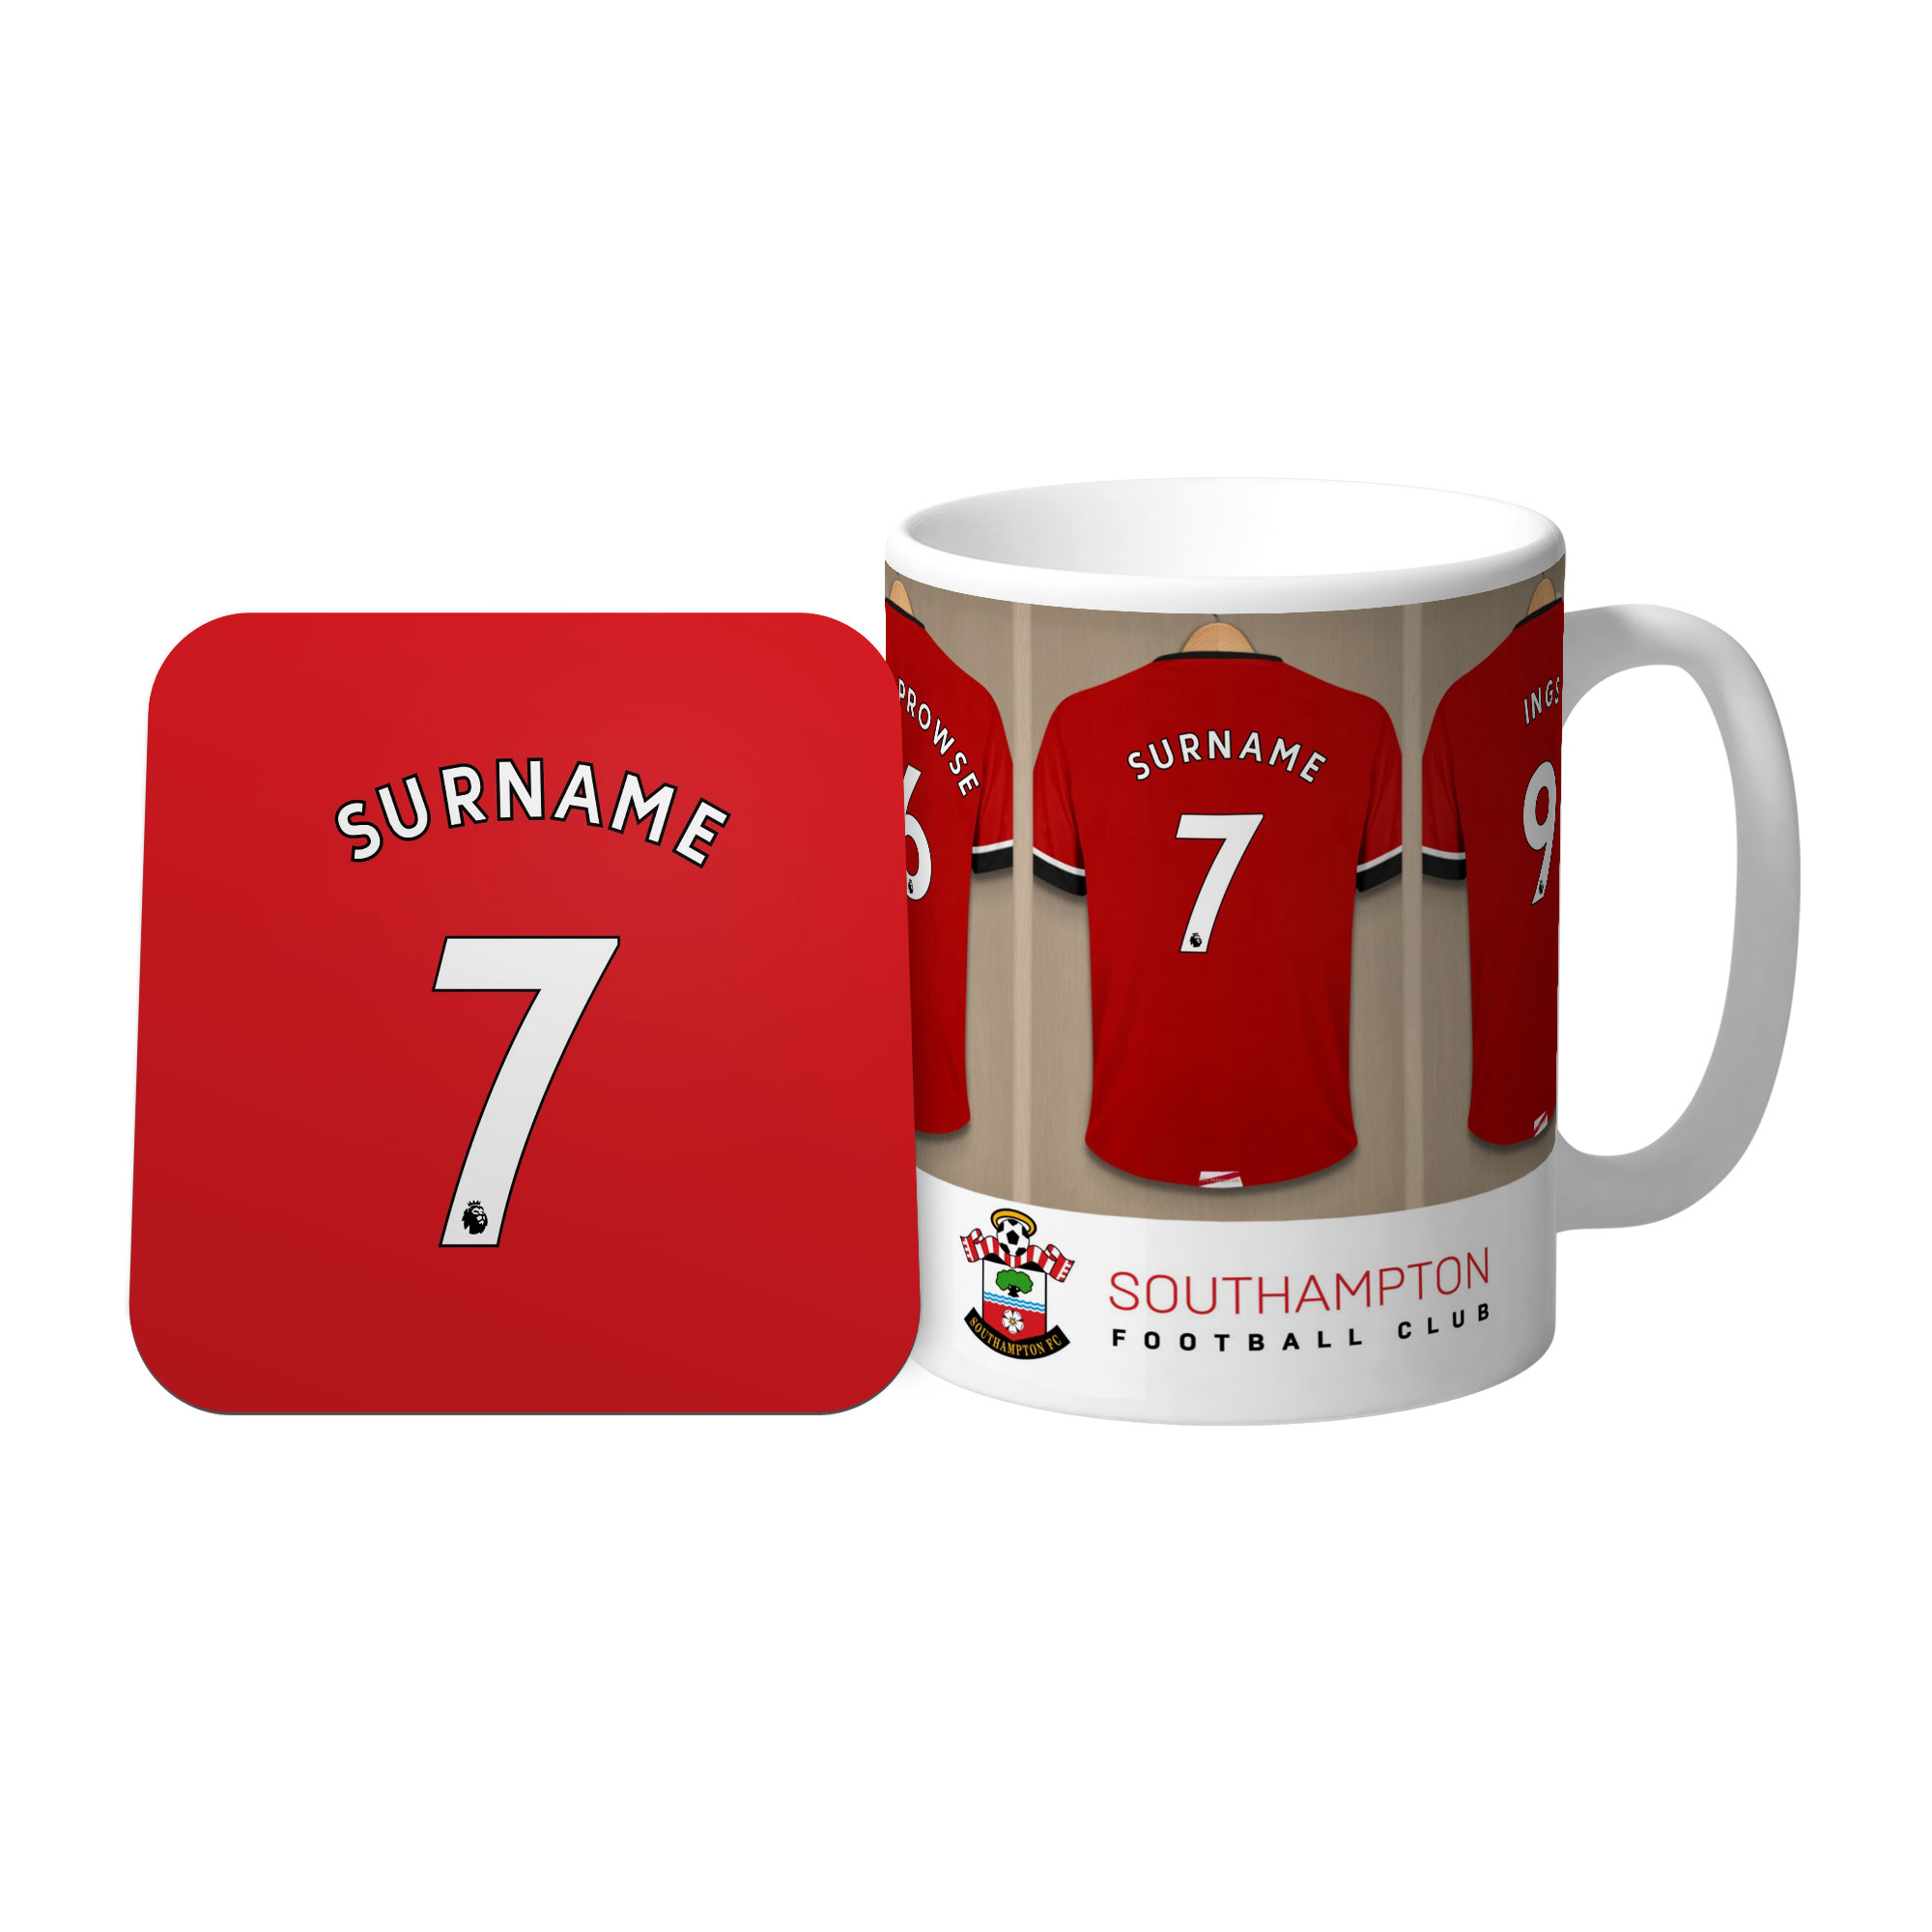 Southampton FC Dressing Room Mug & Coaster Set